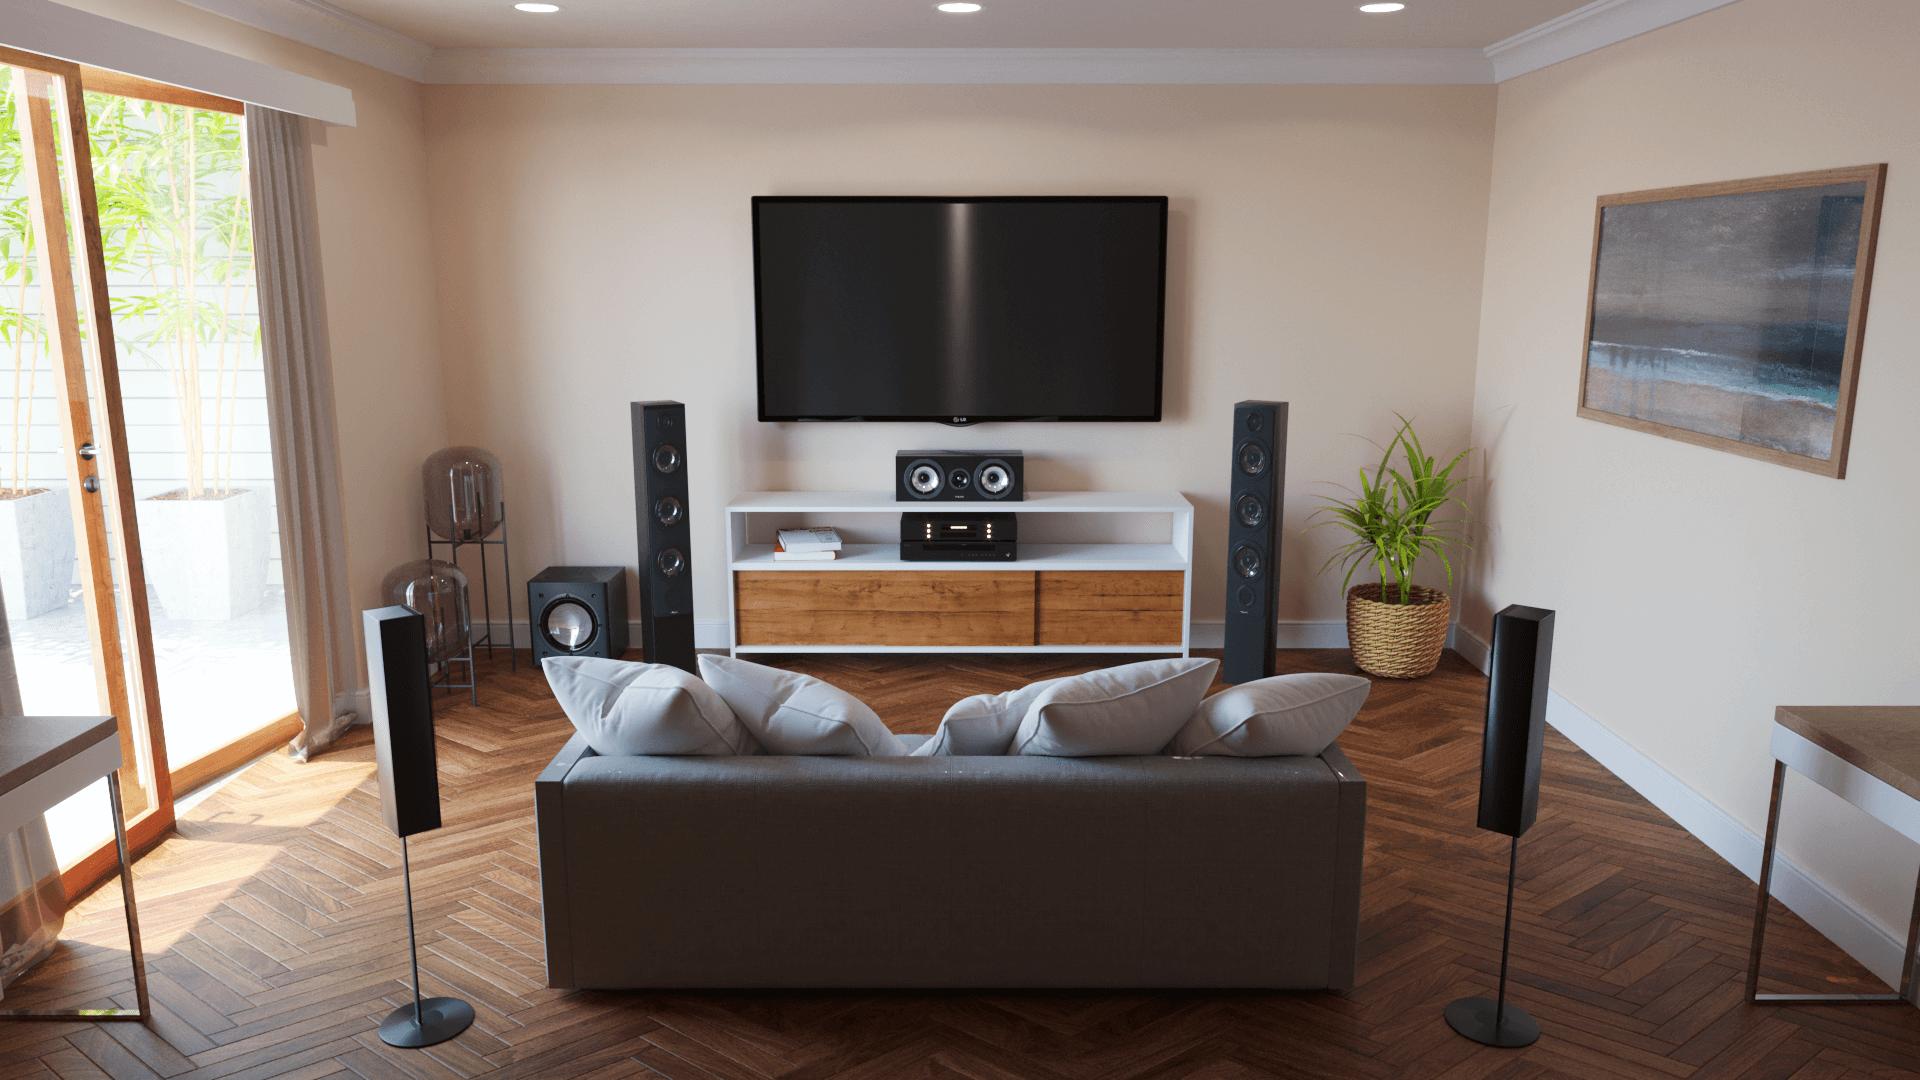 5.1 Surround Sound System Setup & Guide